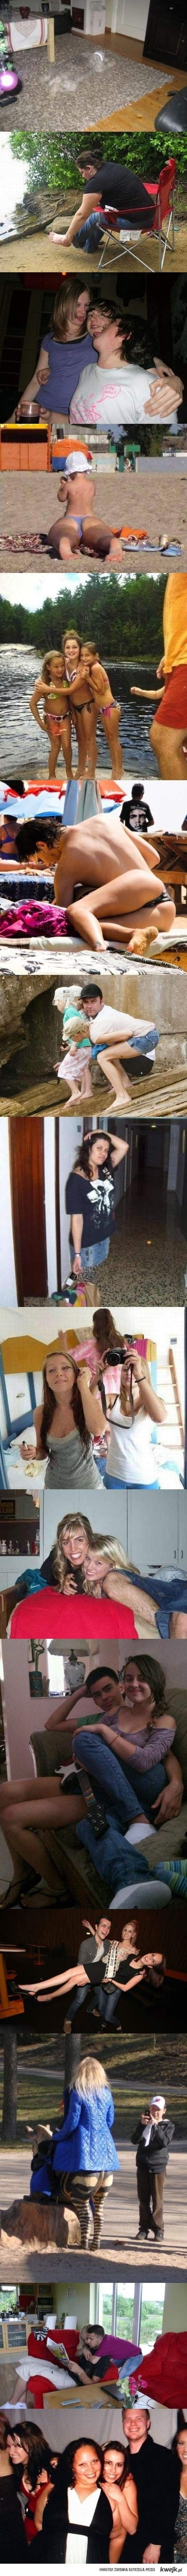 Hilarious camera angles and awkward positioning